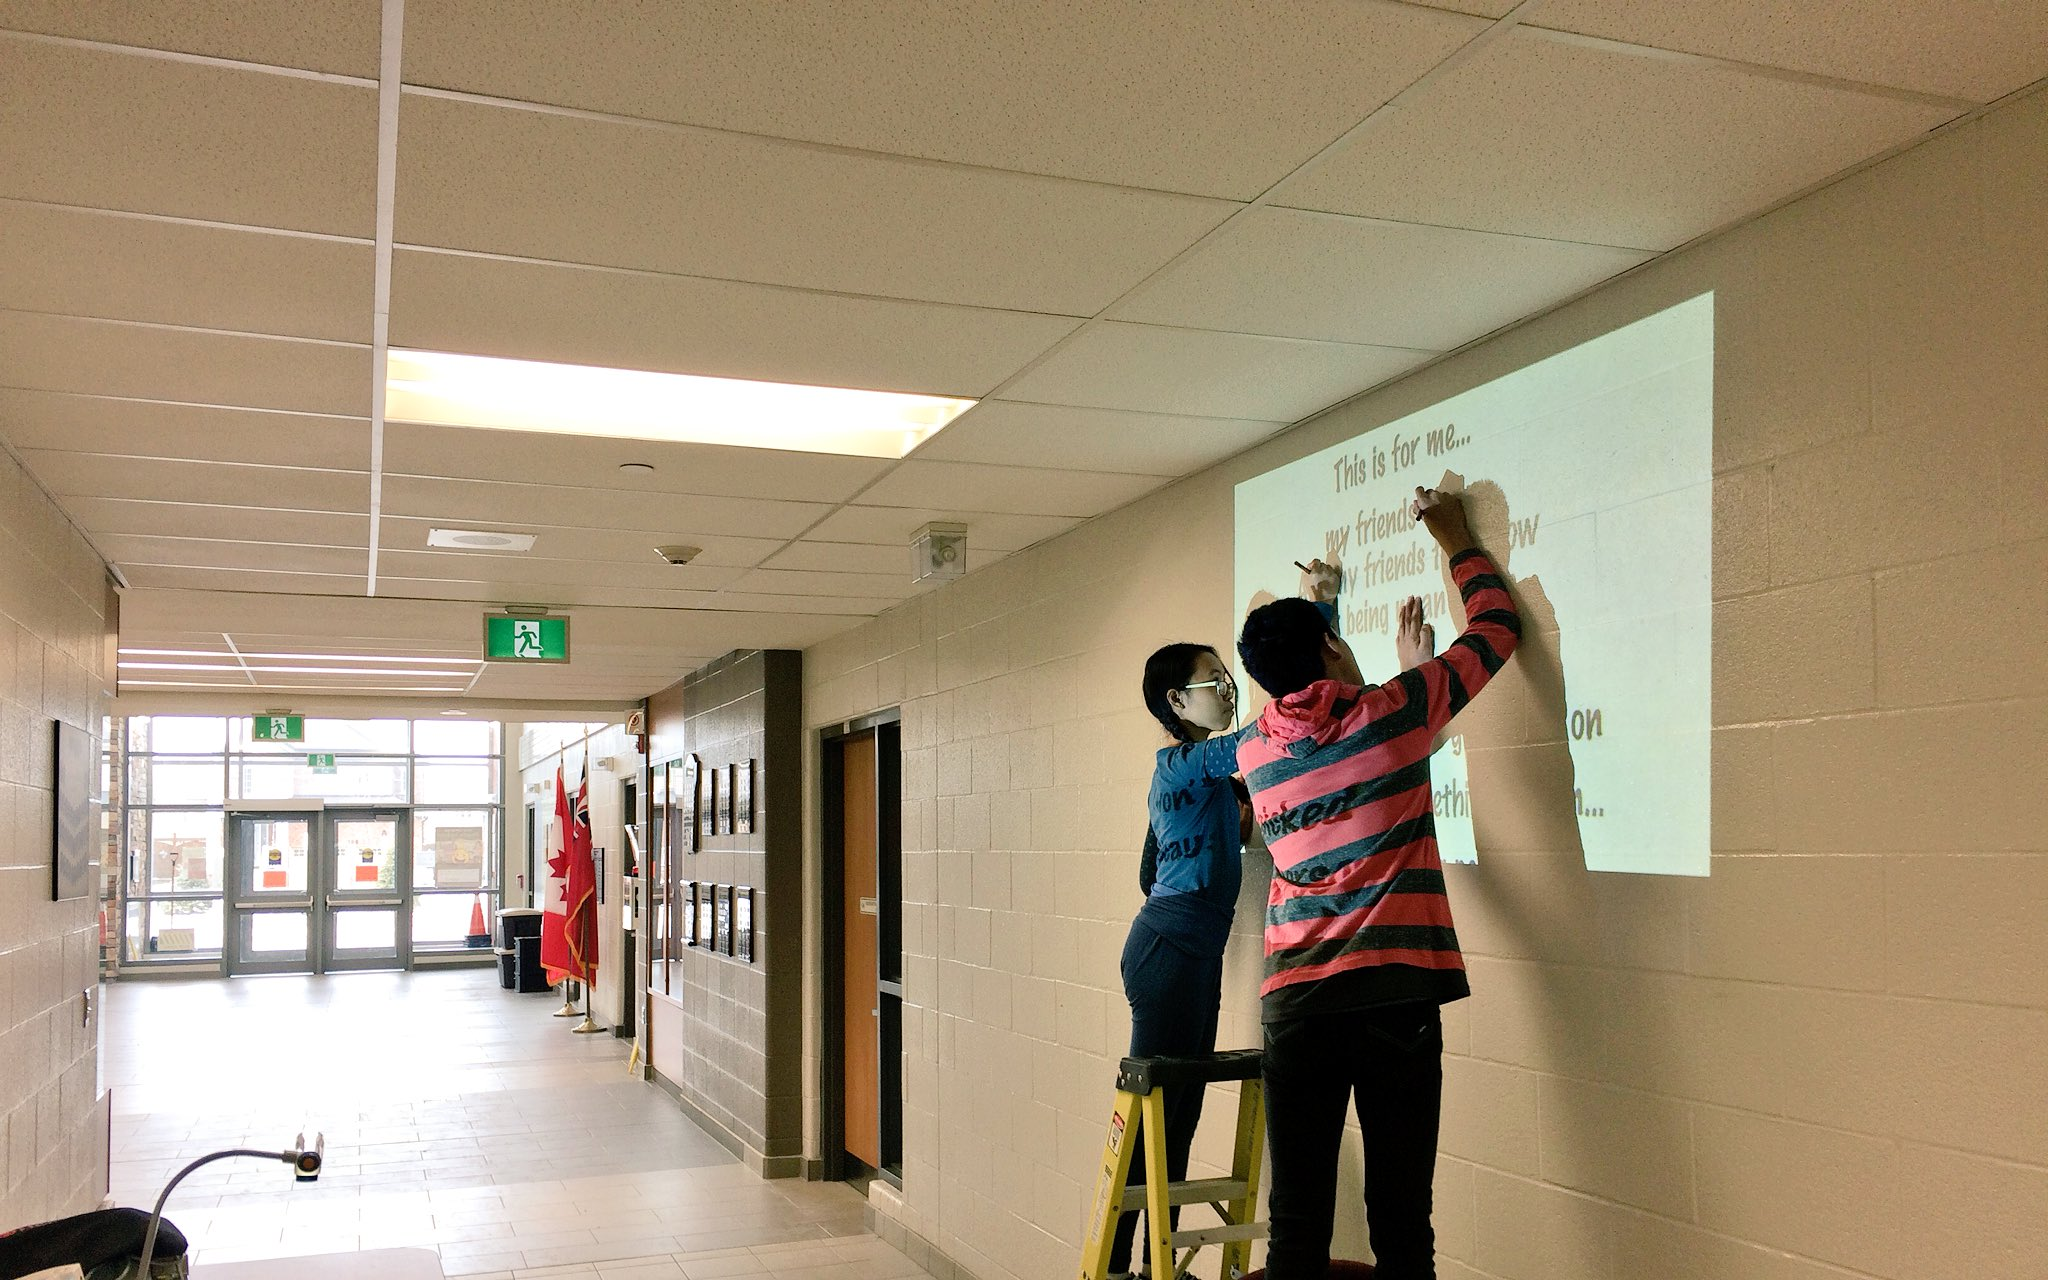 Bullying prevention pledge being stencilled on the wall by some #grade8sam leaders @SMCDSB @SMCDSB_SAM https://t.co/Ibwi9OjrLo